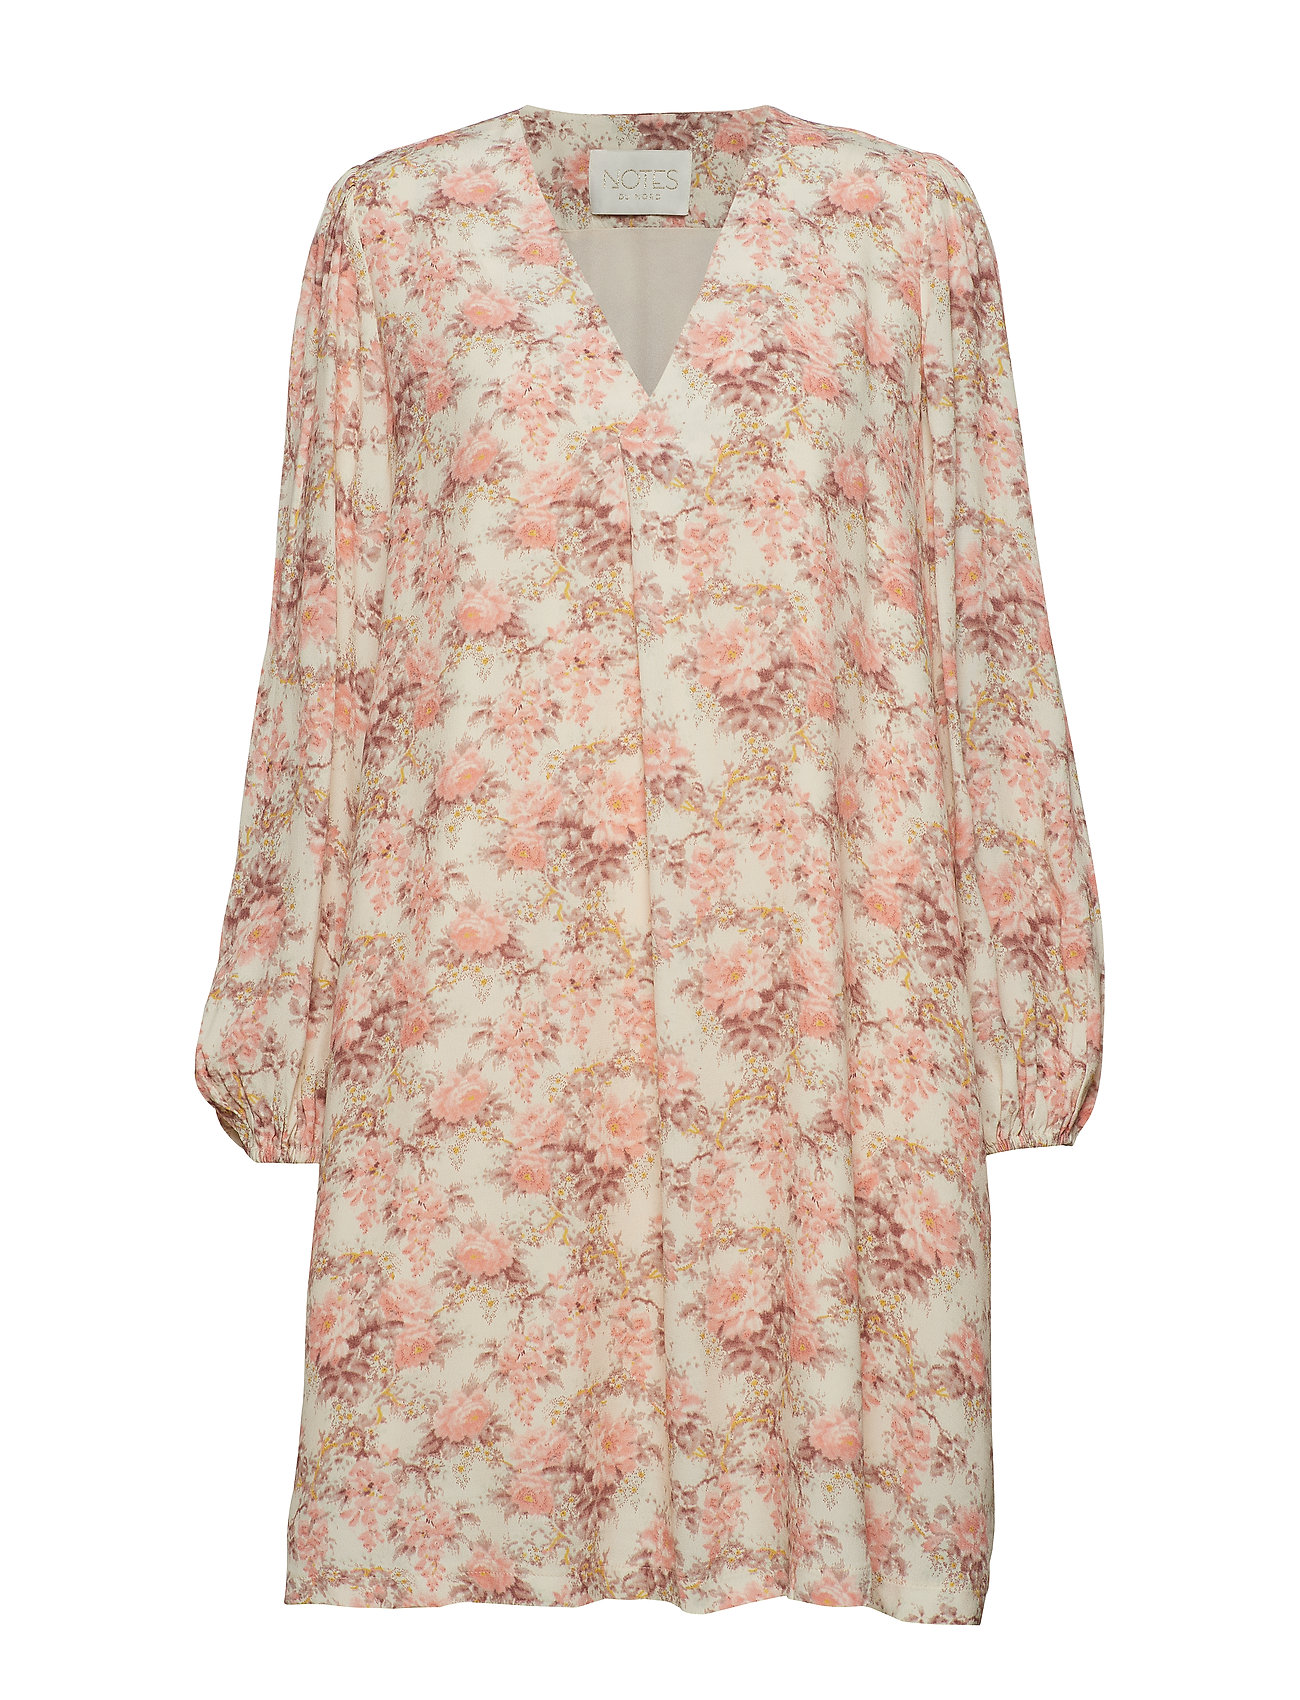 Notes du Nord Lydia Flower Short Dress - ROMANTIC FLOWER